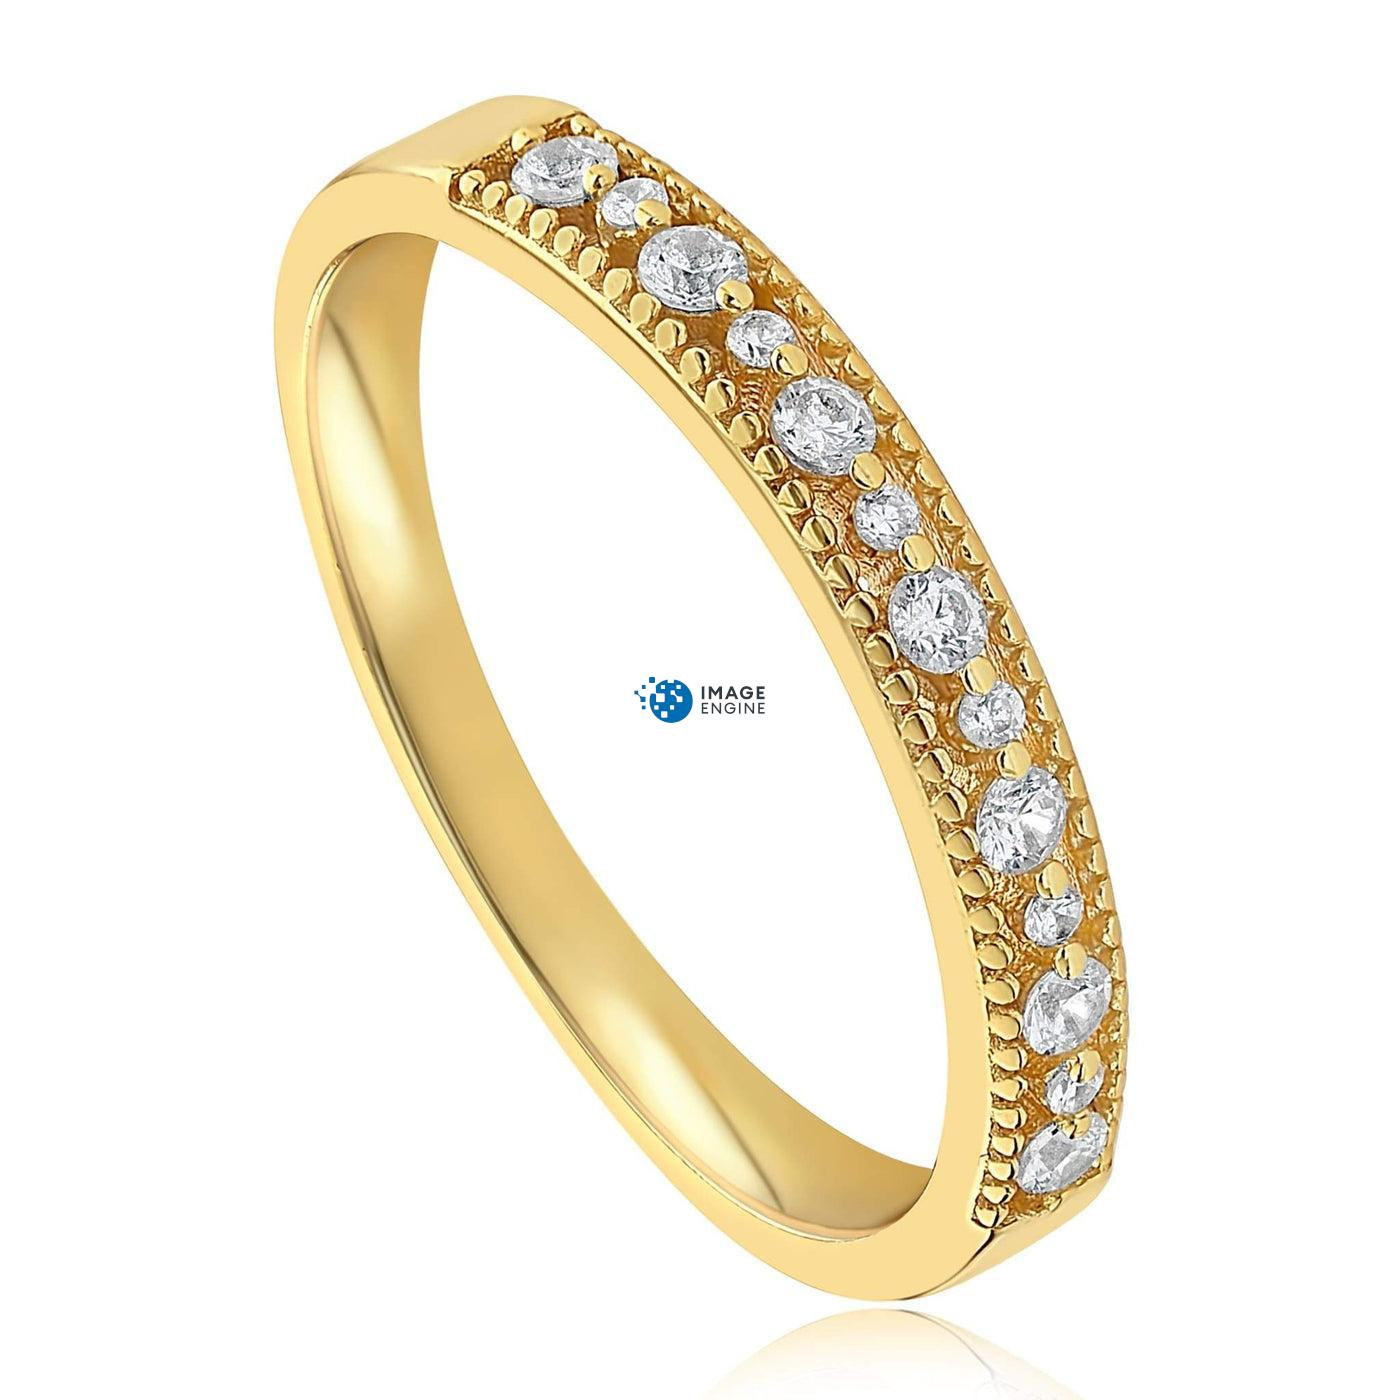 Joyce Layered Stack Ring - Three Quarter View - 18K Yellow Gold Vermeil